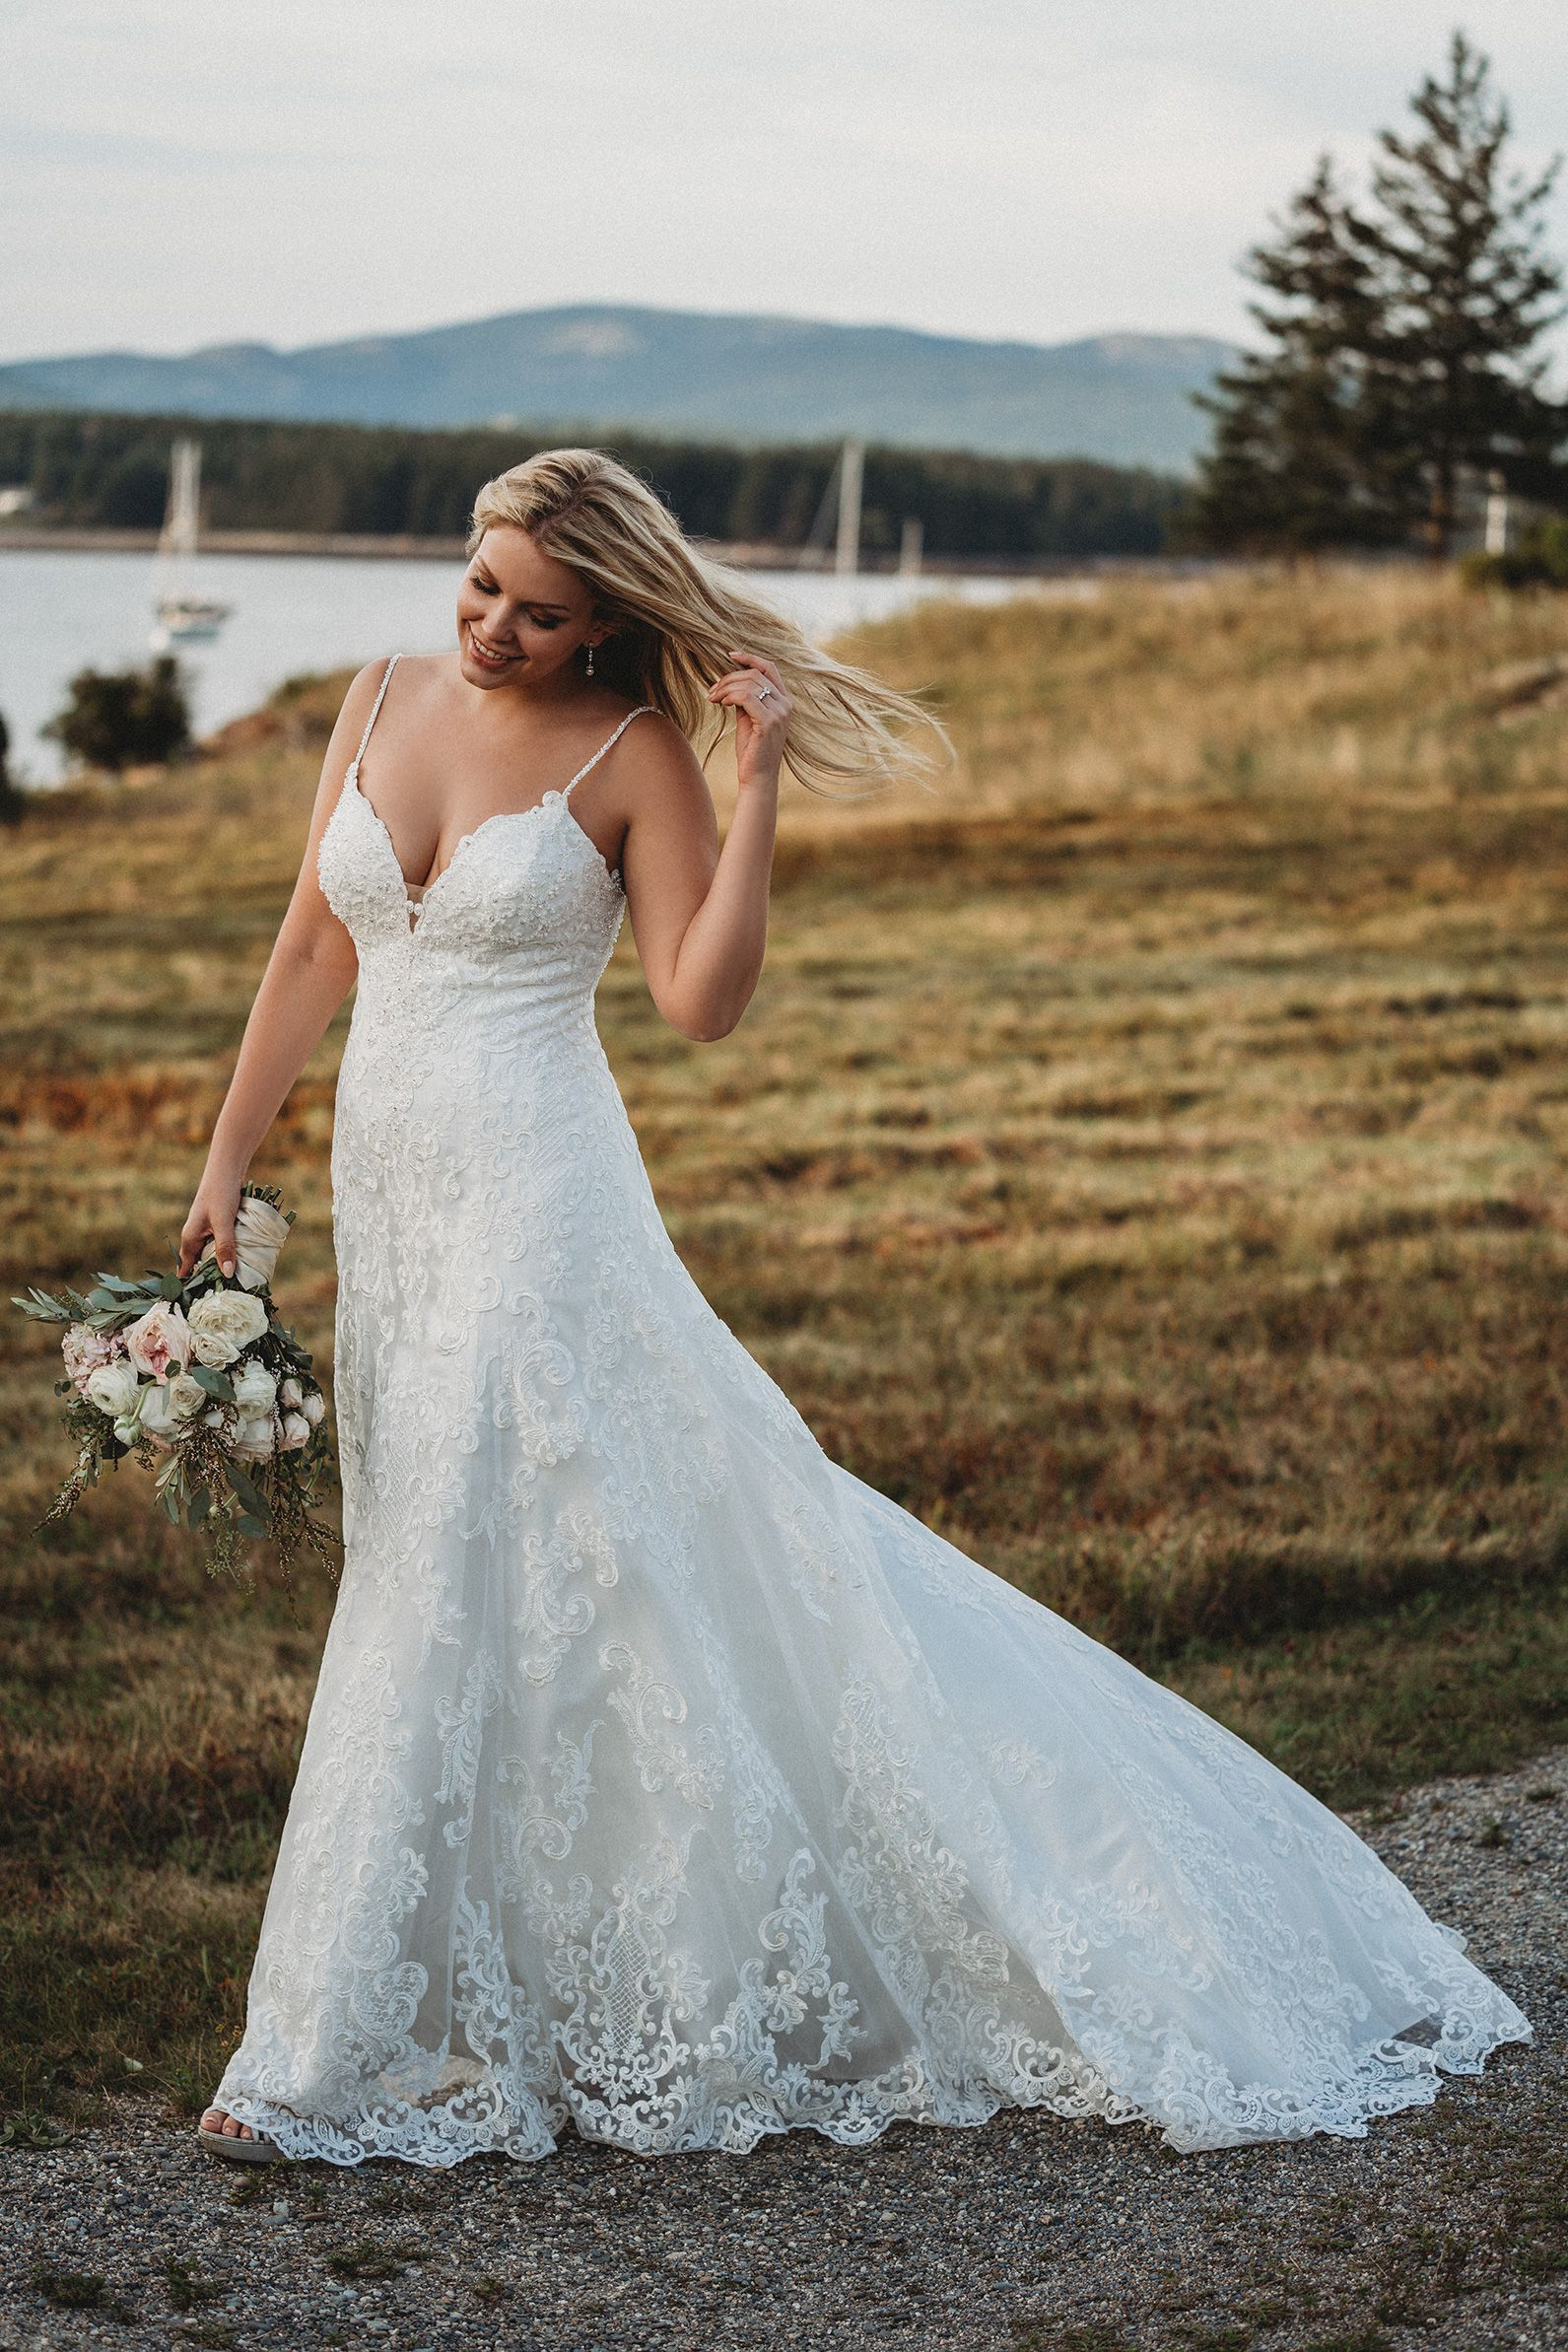 Plus Size Wedding Dress Sample Size 18 Inventory 2664 Dress Available At Bri Wedding Dress Silhouette Guide Allure Bridal Wedding Allure Wedding Dresses [ 2386 x 1591 Pixel ]